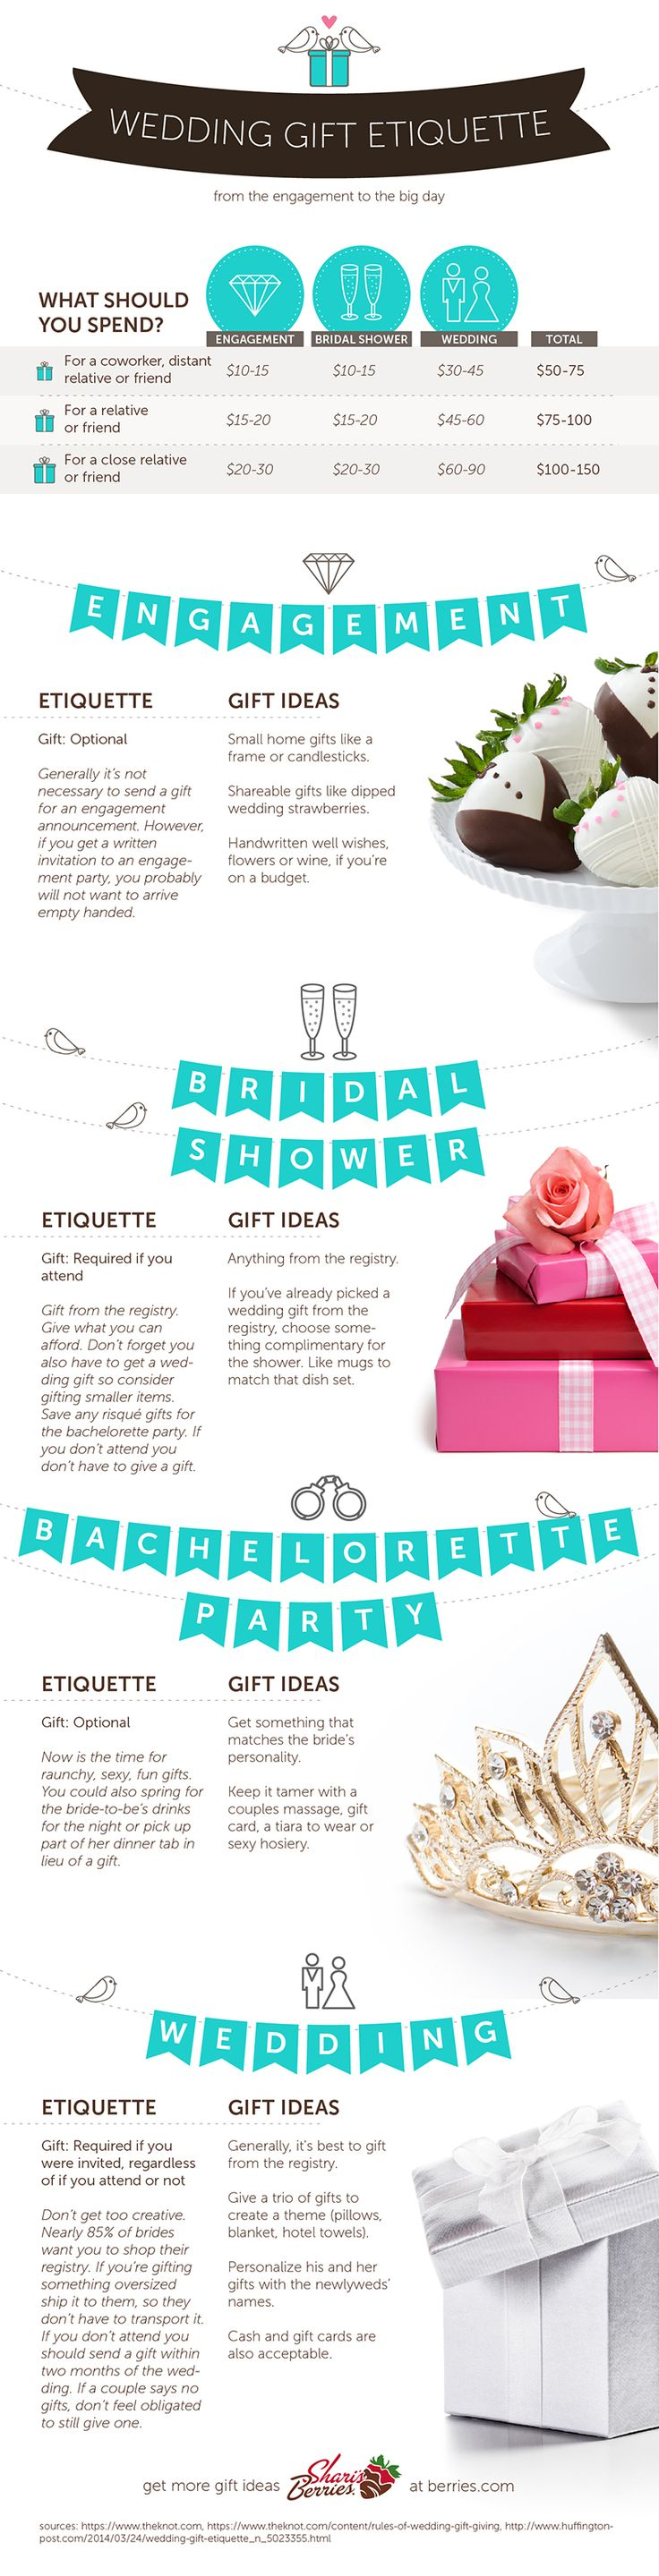 Wedding Gift Guide and Etiquette - Do I need a gift for the bridal shower and the wedding? How much should I spend? What gift should I give for an engagement party? What if the couple says no gifts? Of course now that we reminded you, you're probably trying to think up an excuse to skip the celebrations, or excuses, 'cause you'll need three or four. But, never fear, our wedding guide is here! It has all the answers and tips you need to sail through the season like a gifting pro.